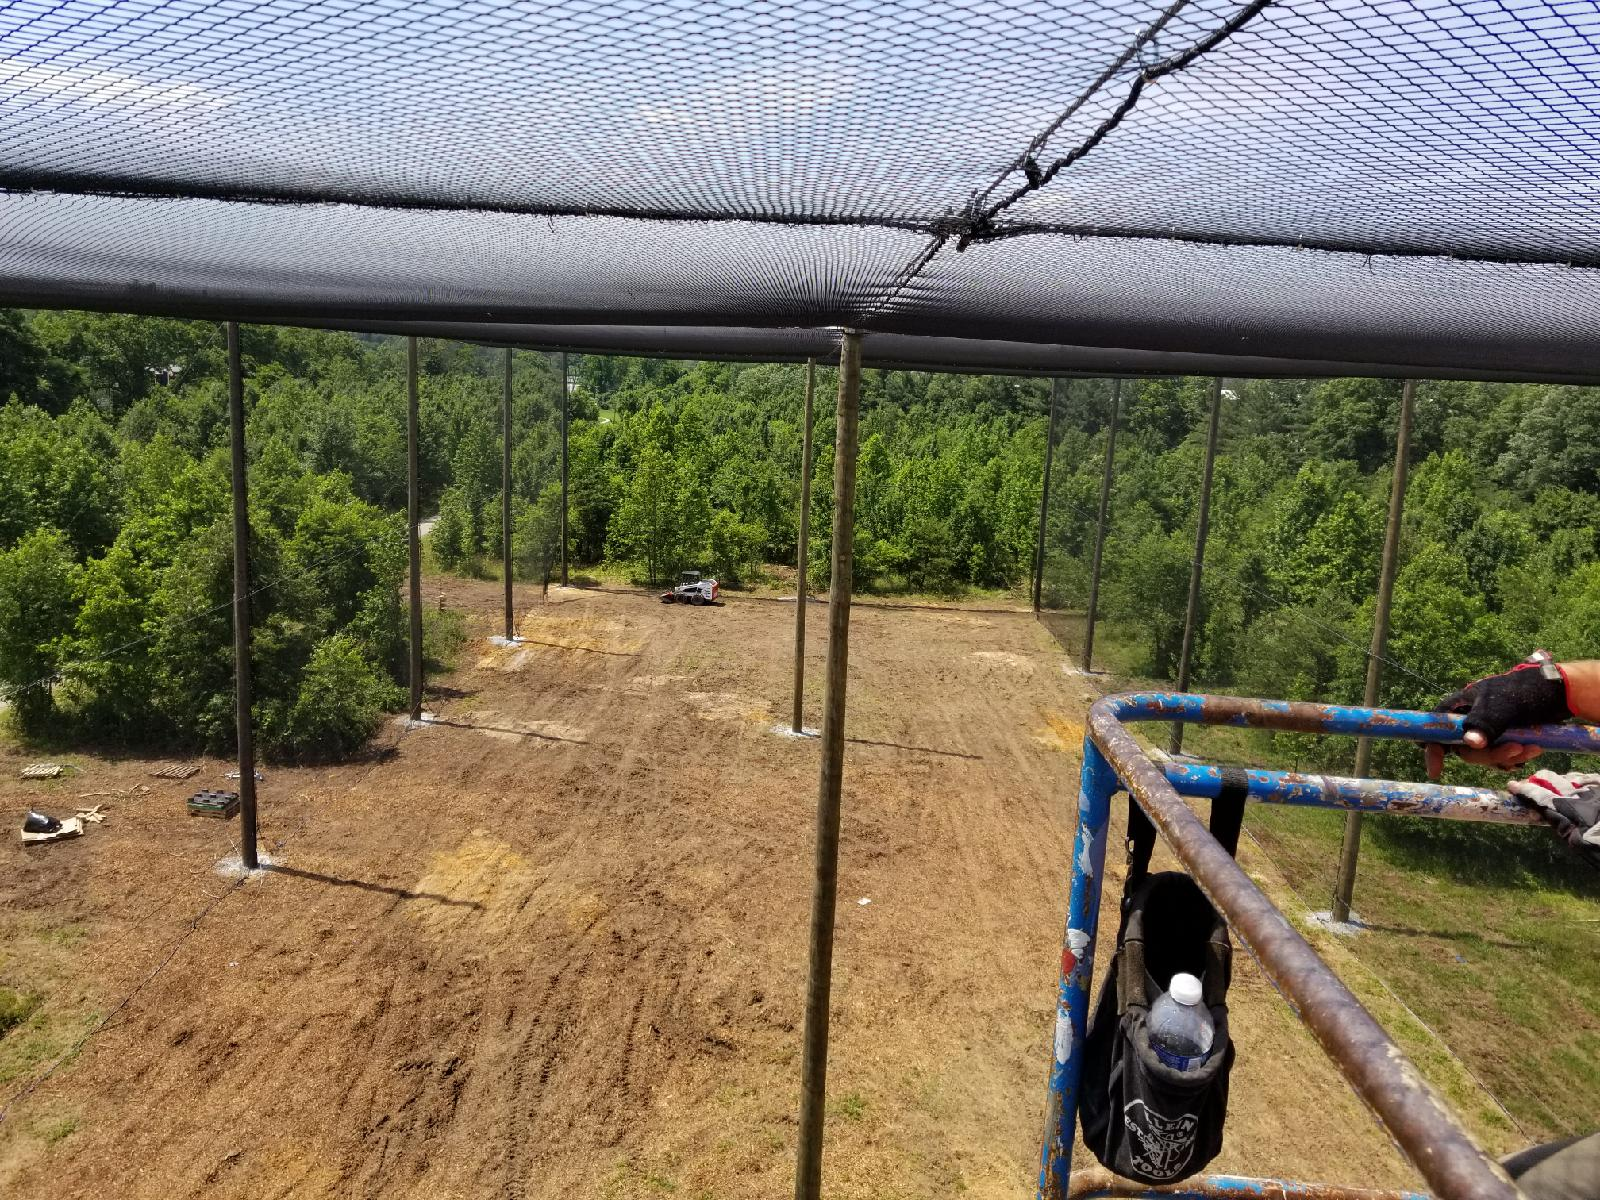 netted uas flight area drone enclosure university of maryland grn